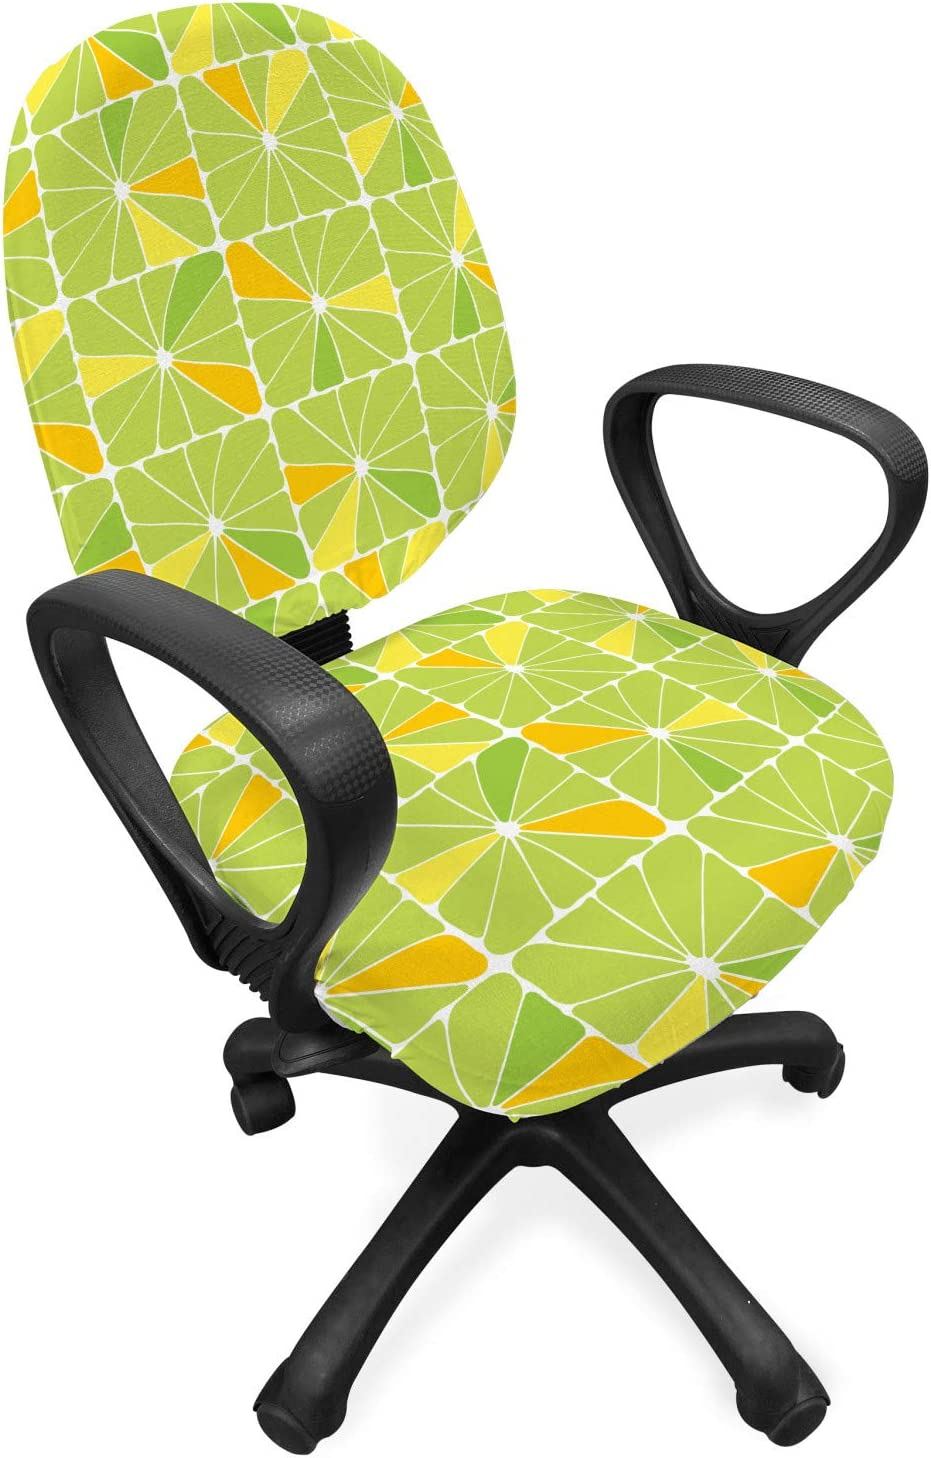 Lunarable Geometric Office Chair Slipcover, Vibrant Color Abstract Lime and Lemon Slices in Square Cells, Protective Stretch Decorative Fabric Cover, Standard Size, Apple Green